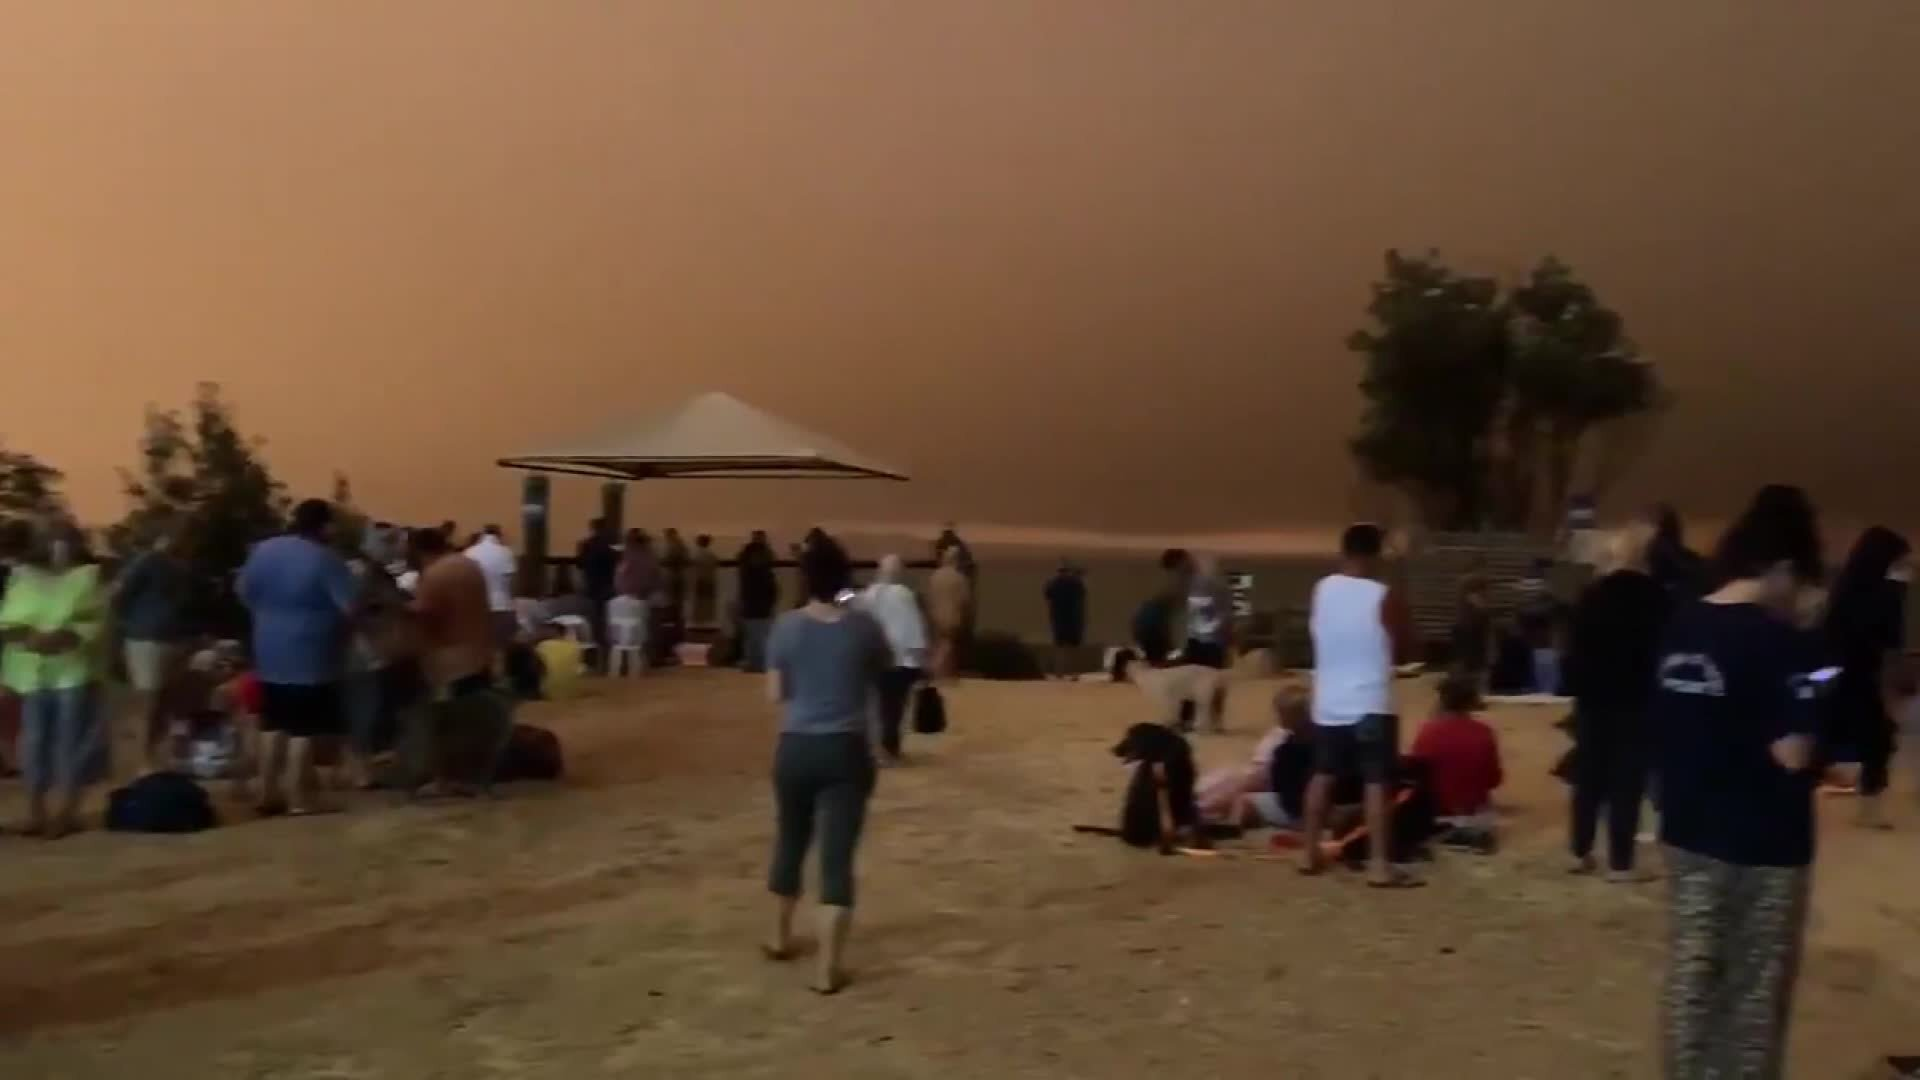 Photos: Thousands of Australian residents had to take refuge on a beach as wildfiresraged